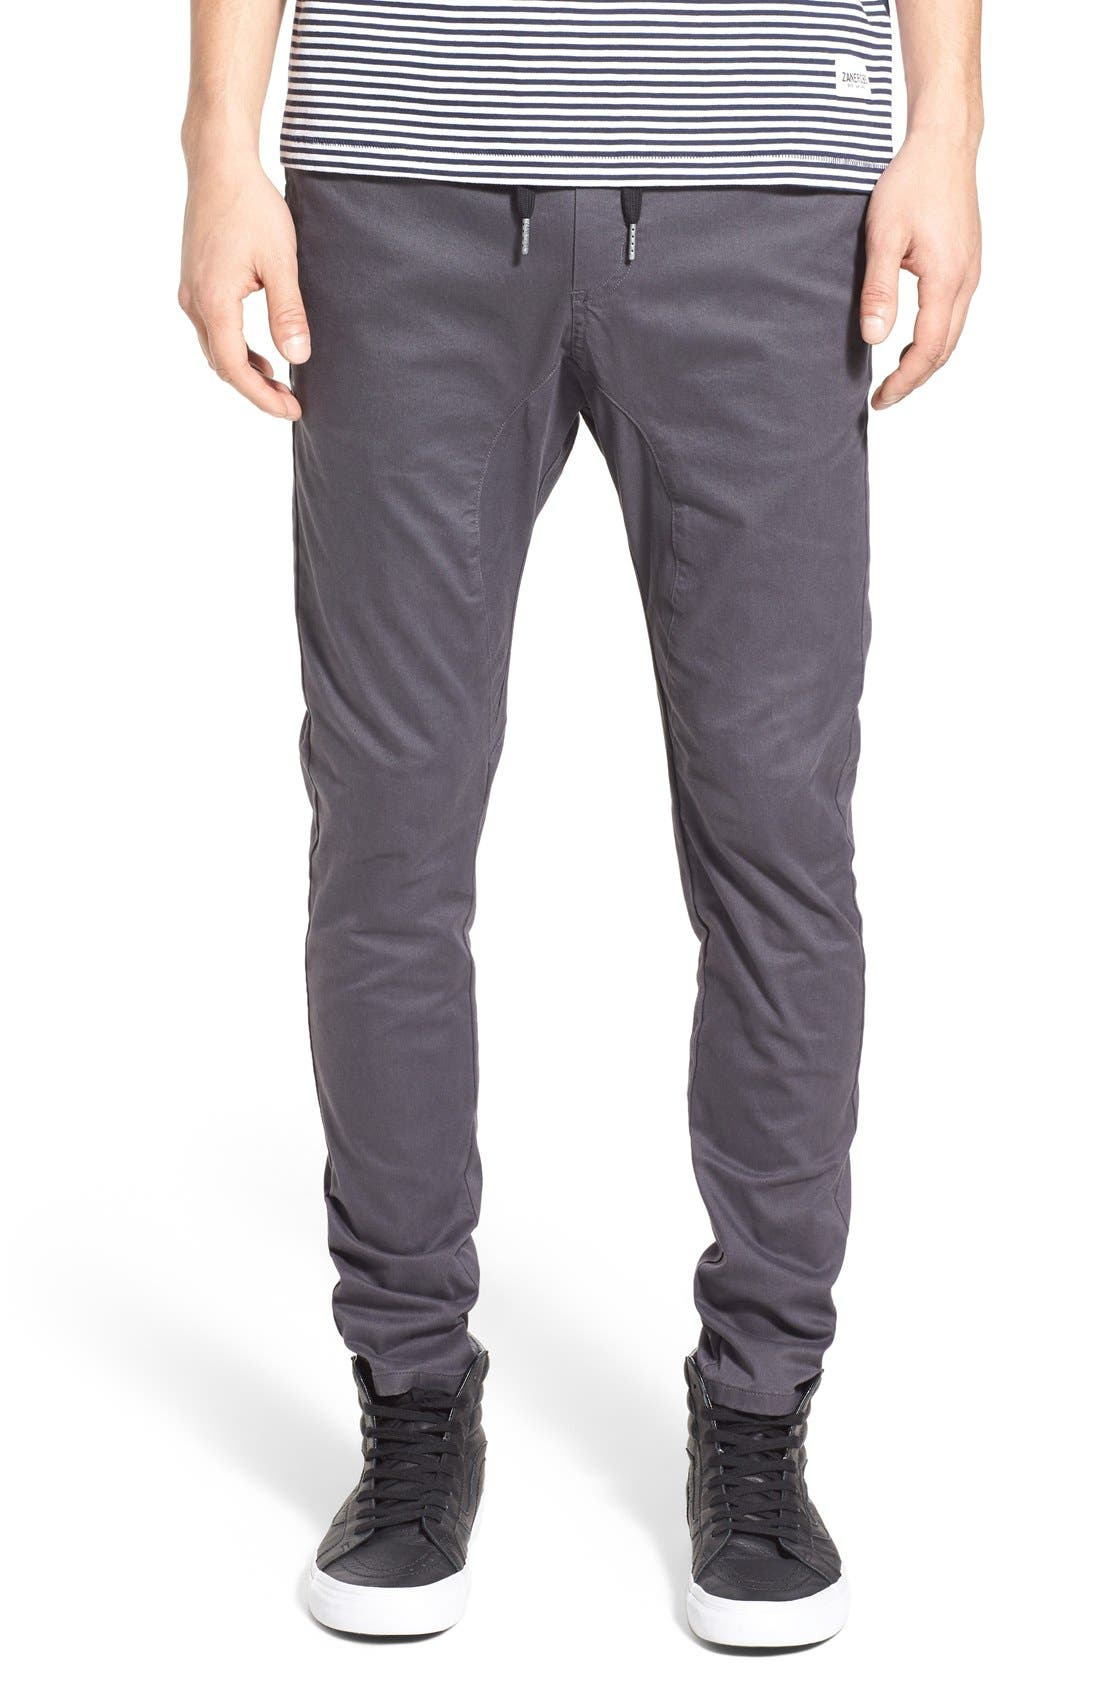 ZANEROBE, Salerno Jogger Pants, Main thumbnail 1, color, 022